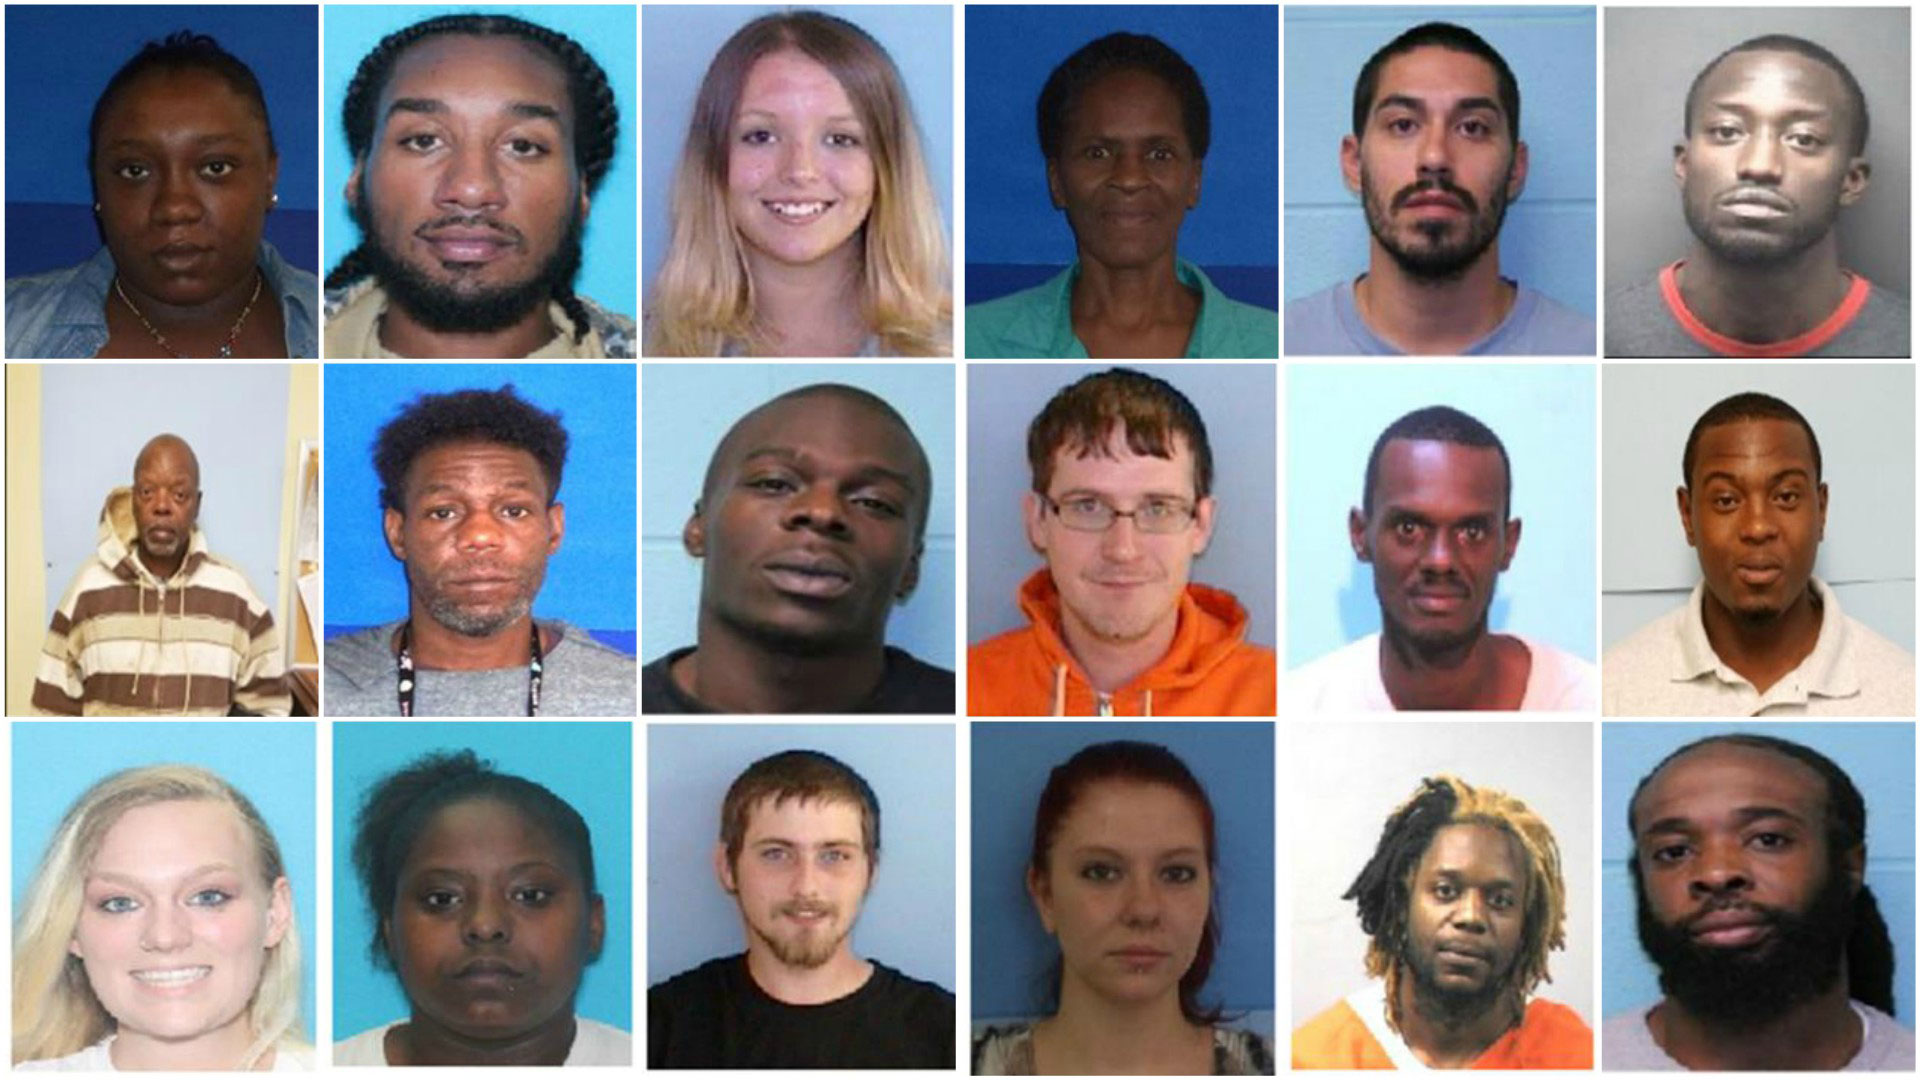 10 arrested, 9 wanted as part of